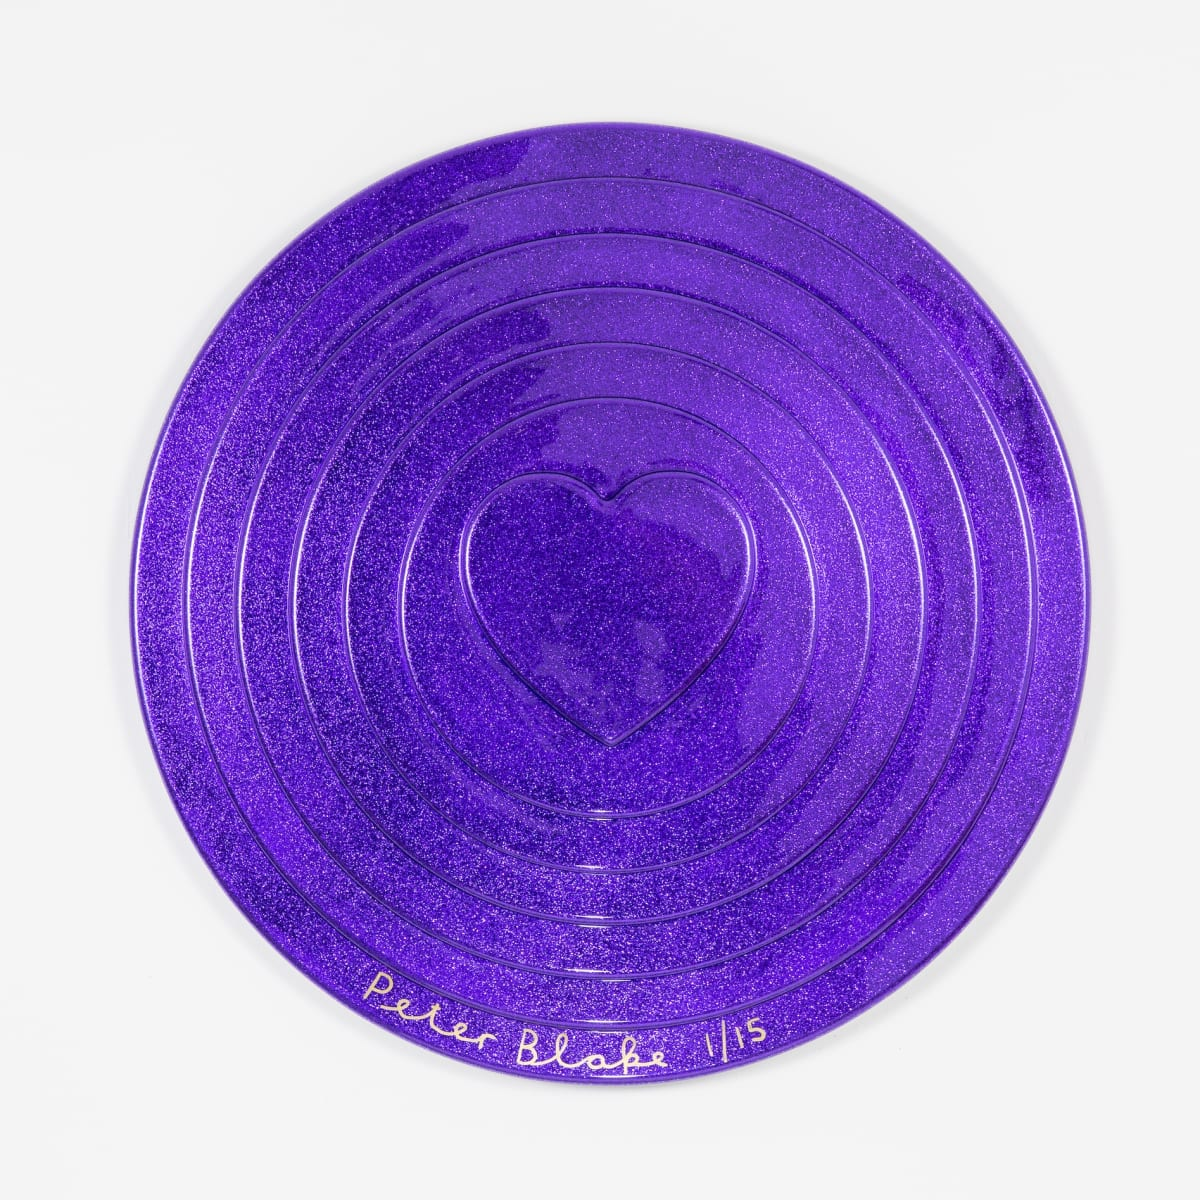 Peter Blake Purple Target (metal flake), 2017 Vacuum formed plastic, paint 69 x 69 x 10 cm Edition of 15 Signed and numbered